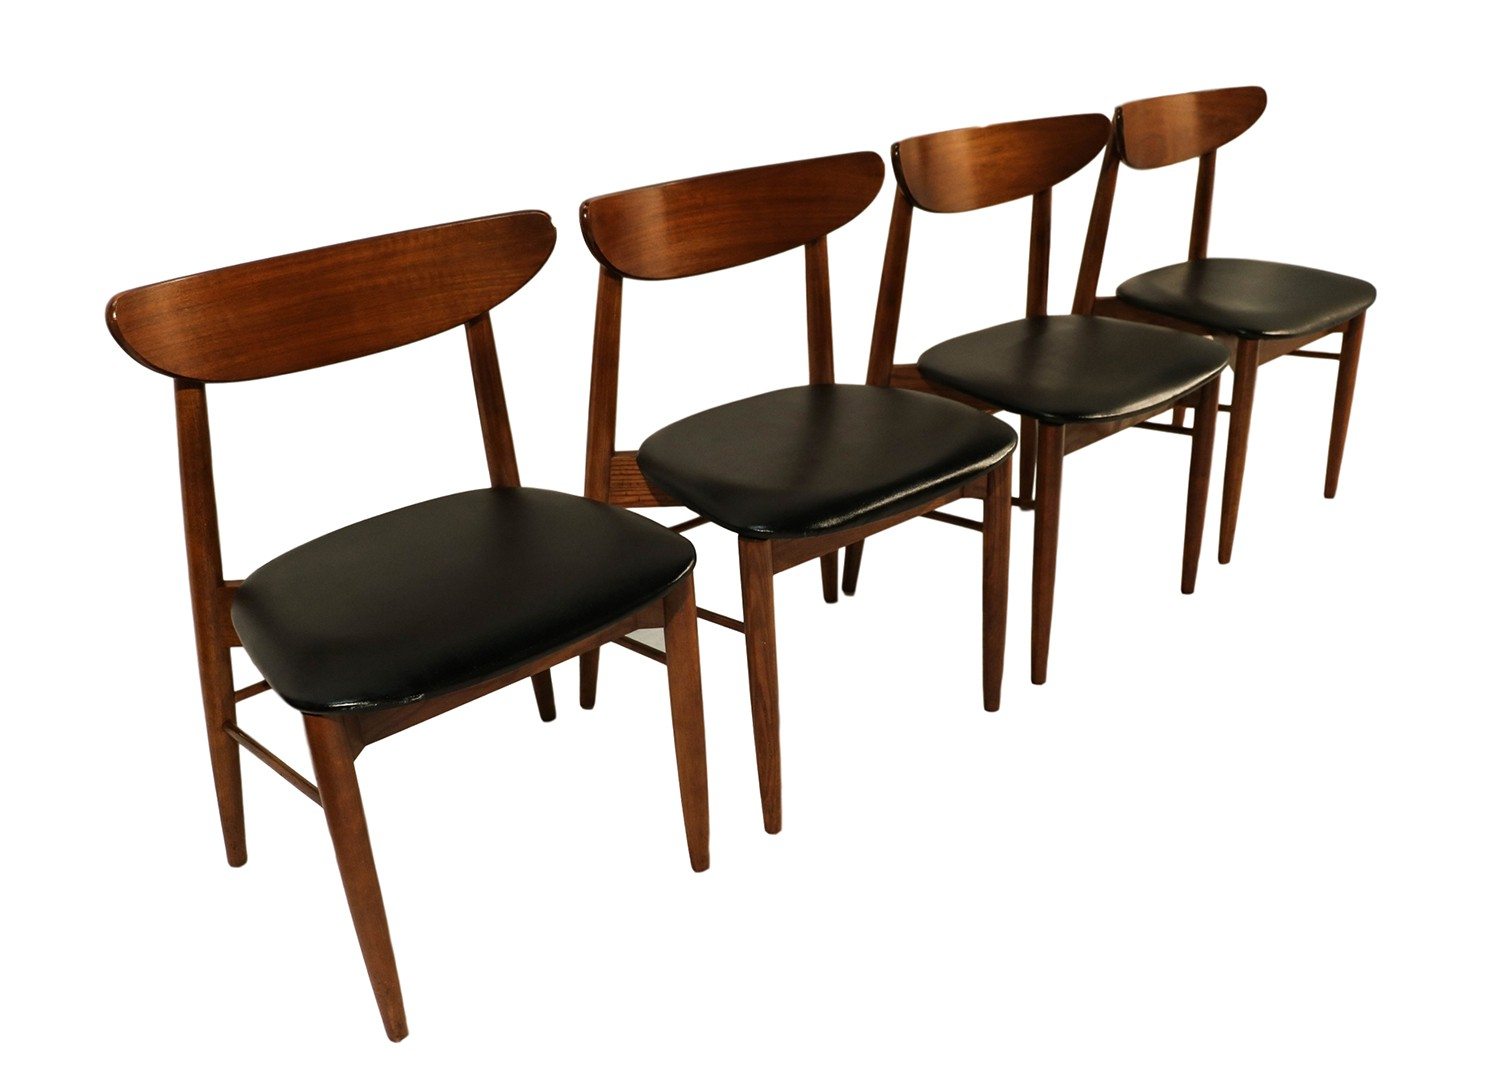 Lane mid century modern walnut dining chairs for Lane furniture